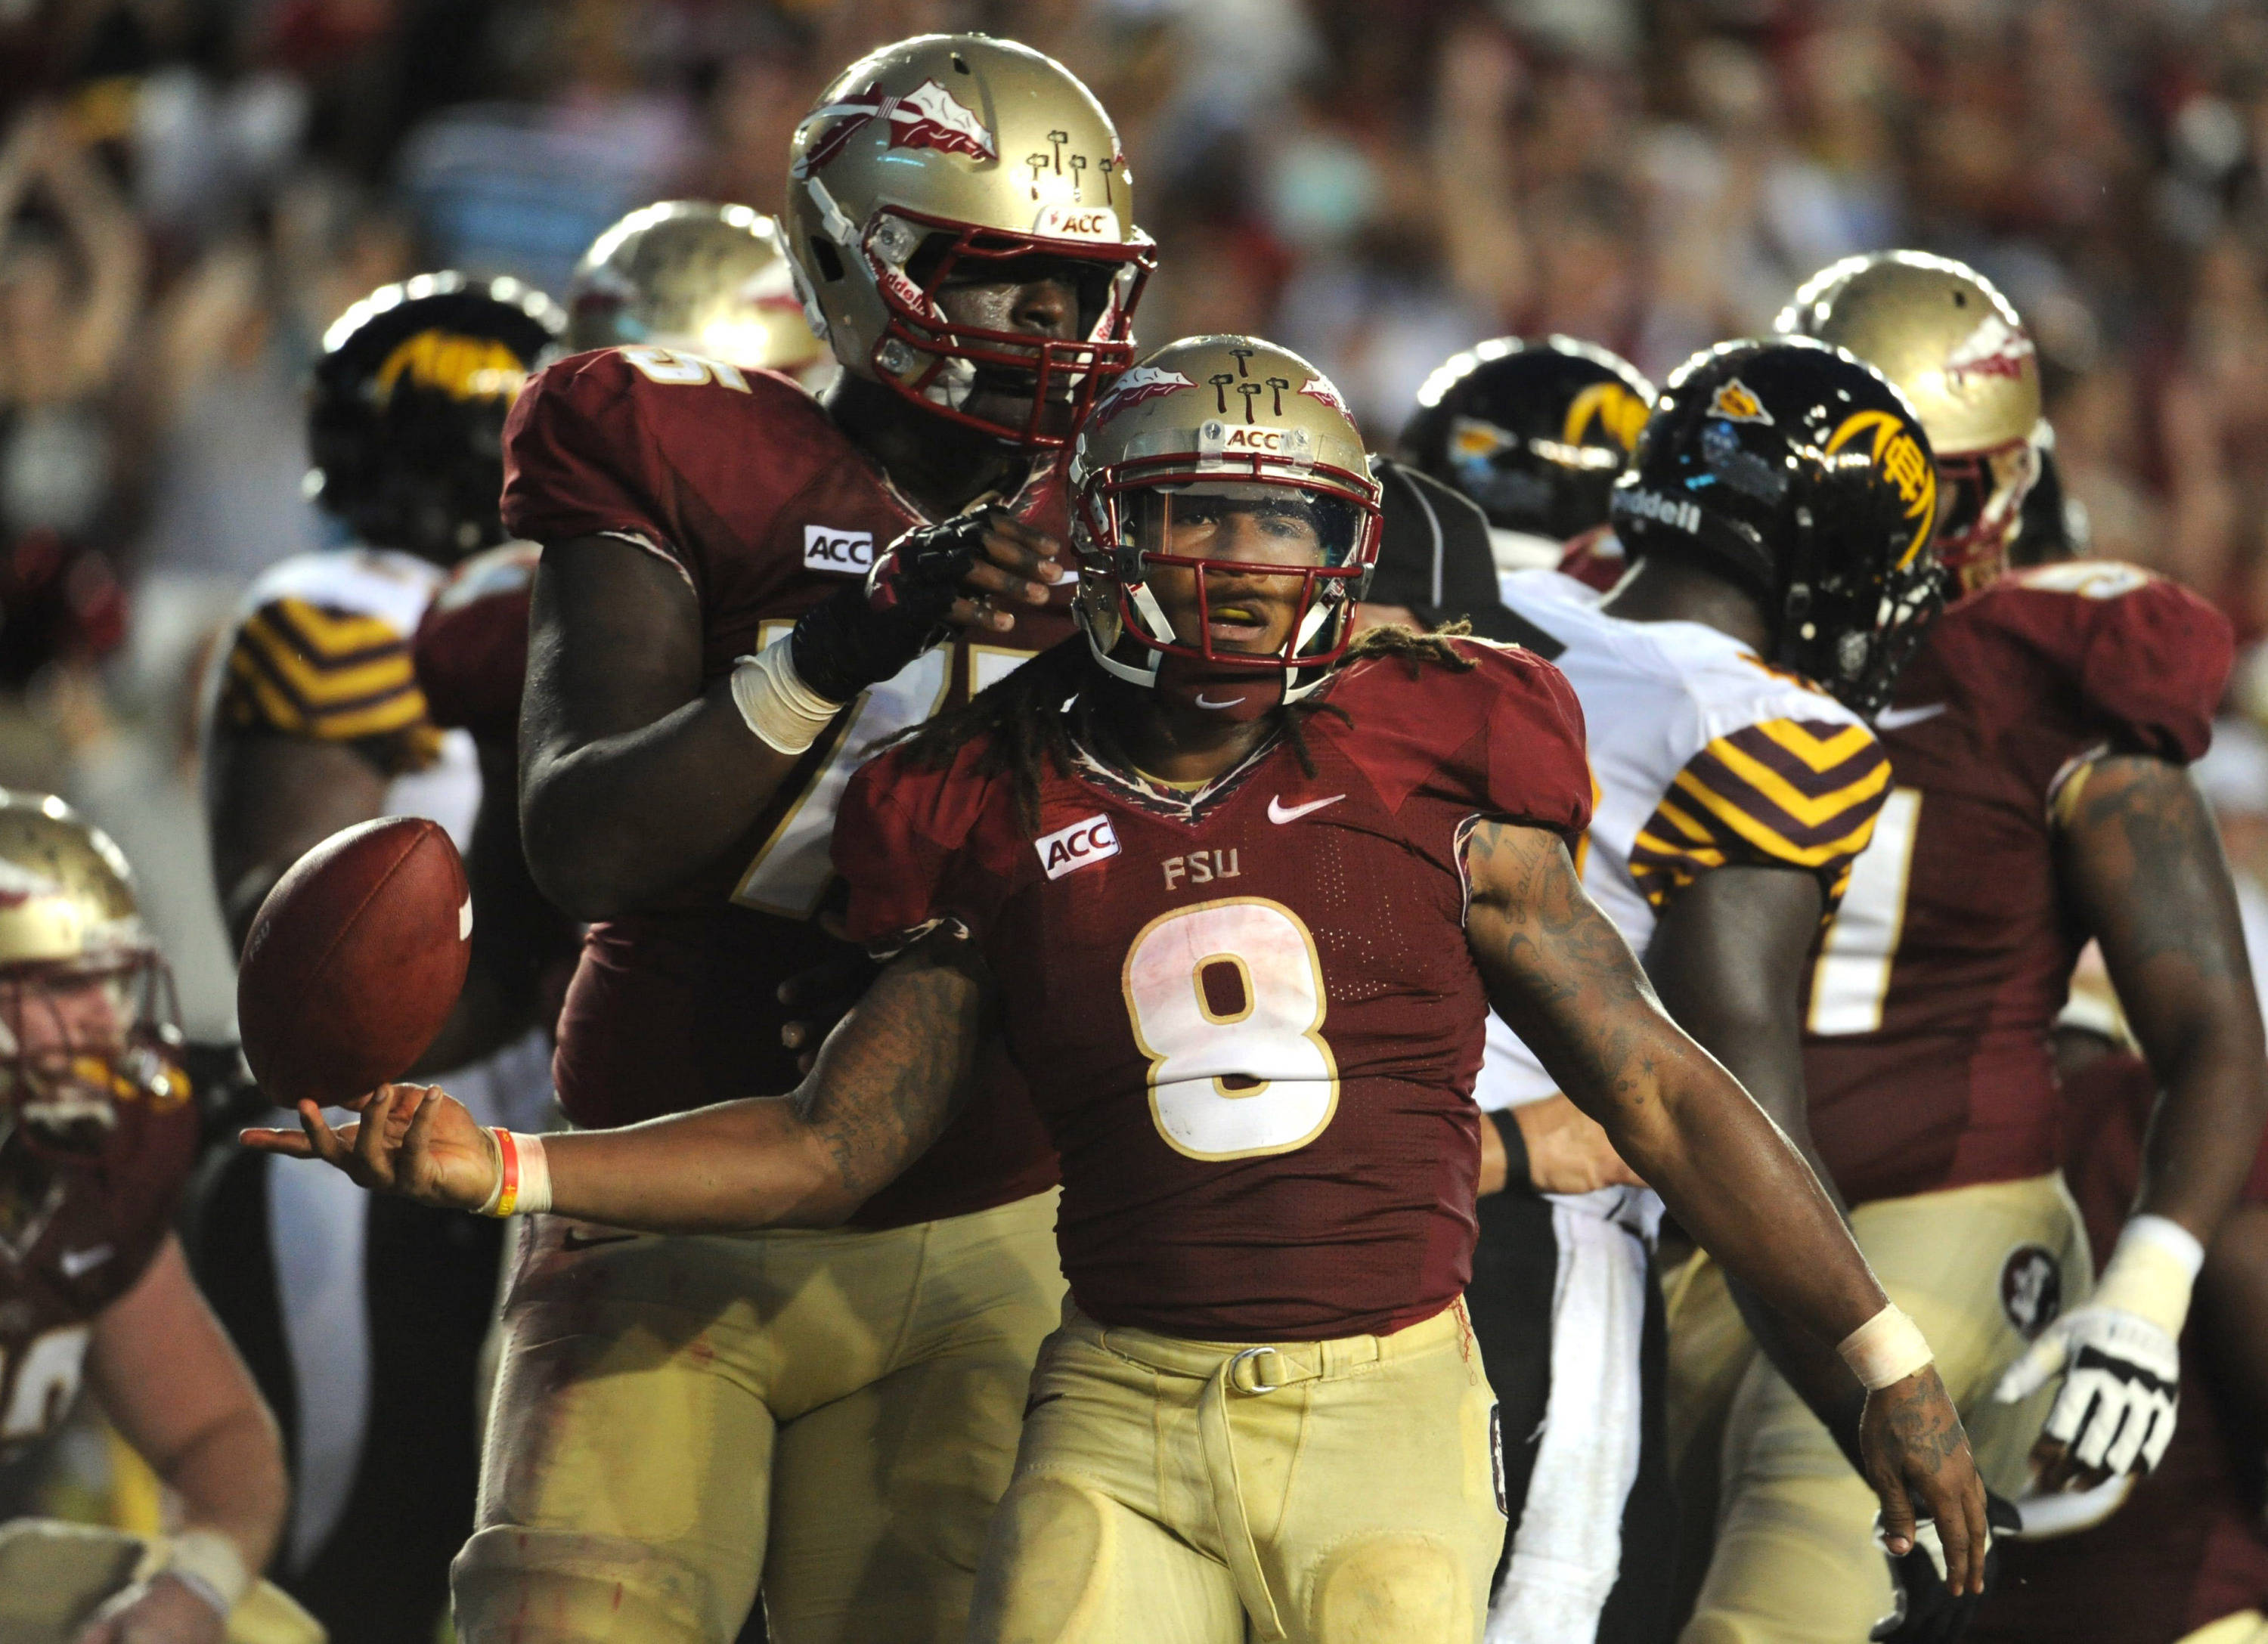 Florida State Seminoles running back Devonta Freeman (8) celebrates a touchdown run with offensive lineman Cameron Erving (75) during the second half of the game against the Bethune-Cookman Wildcats. (Melina Vastola-USA TODAY Sports)